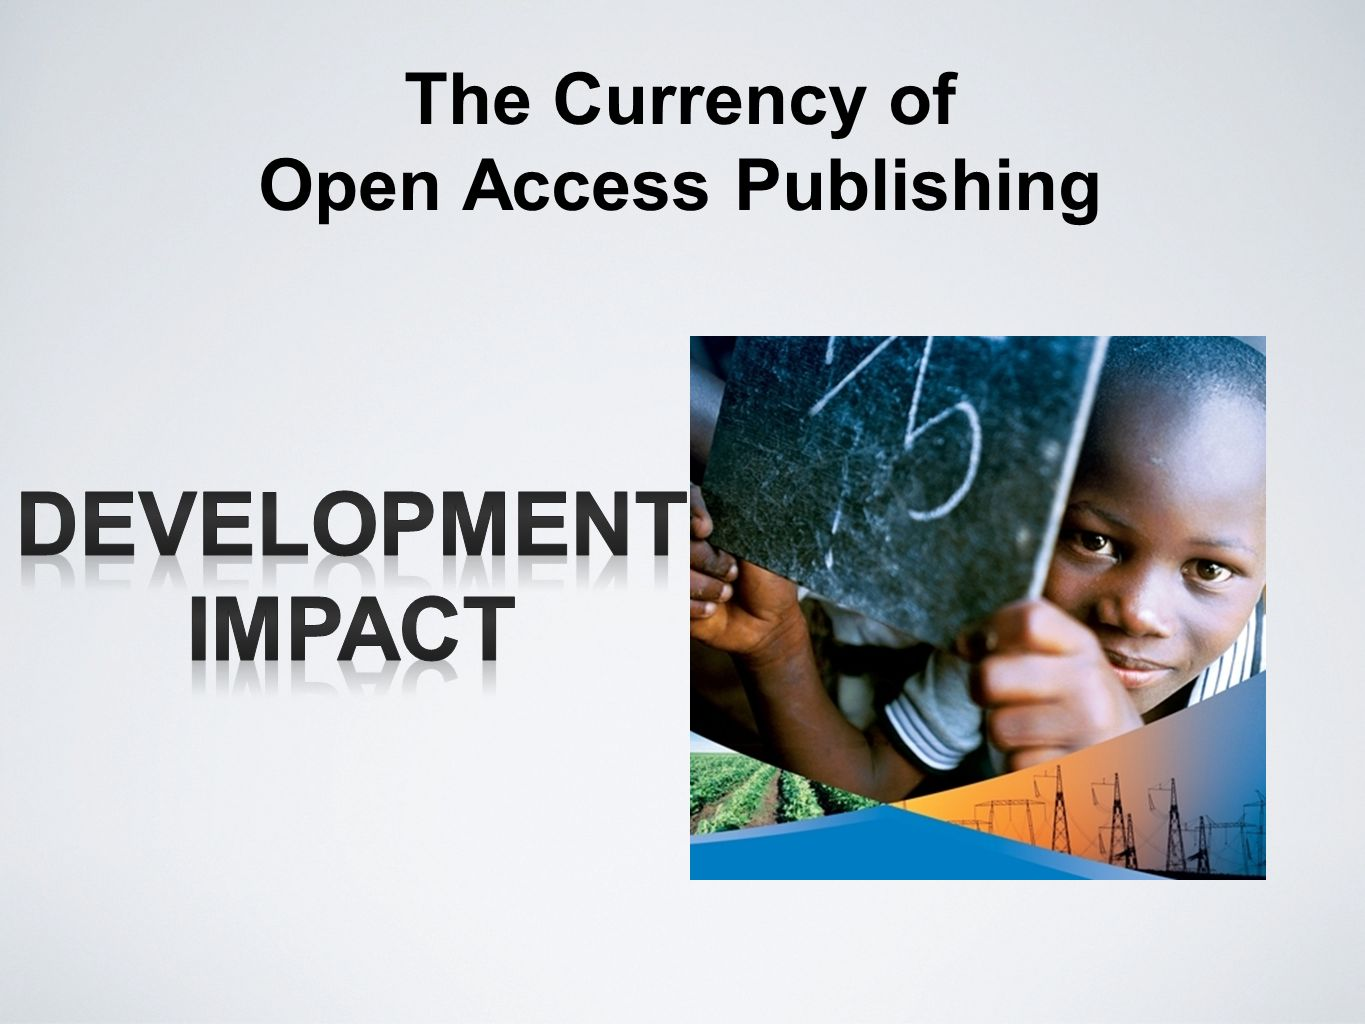 The Currency of Open Access Publishing